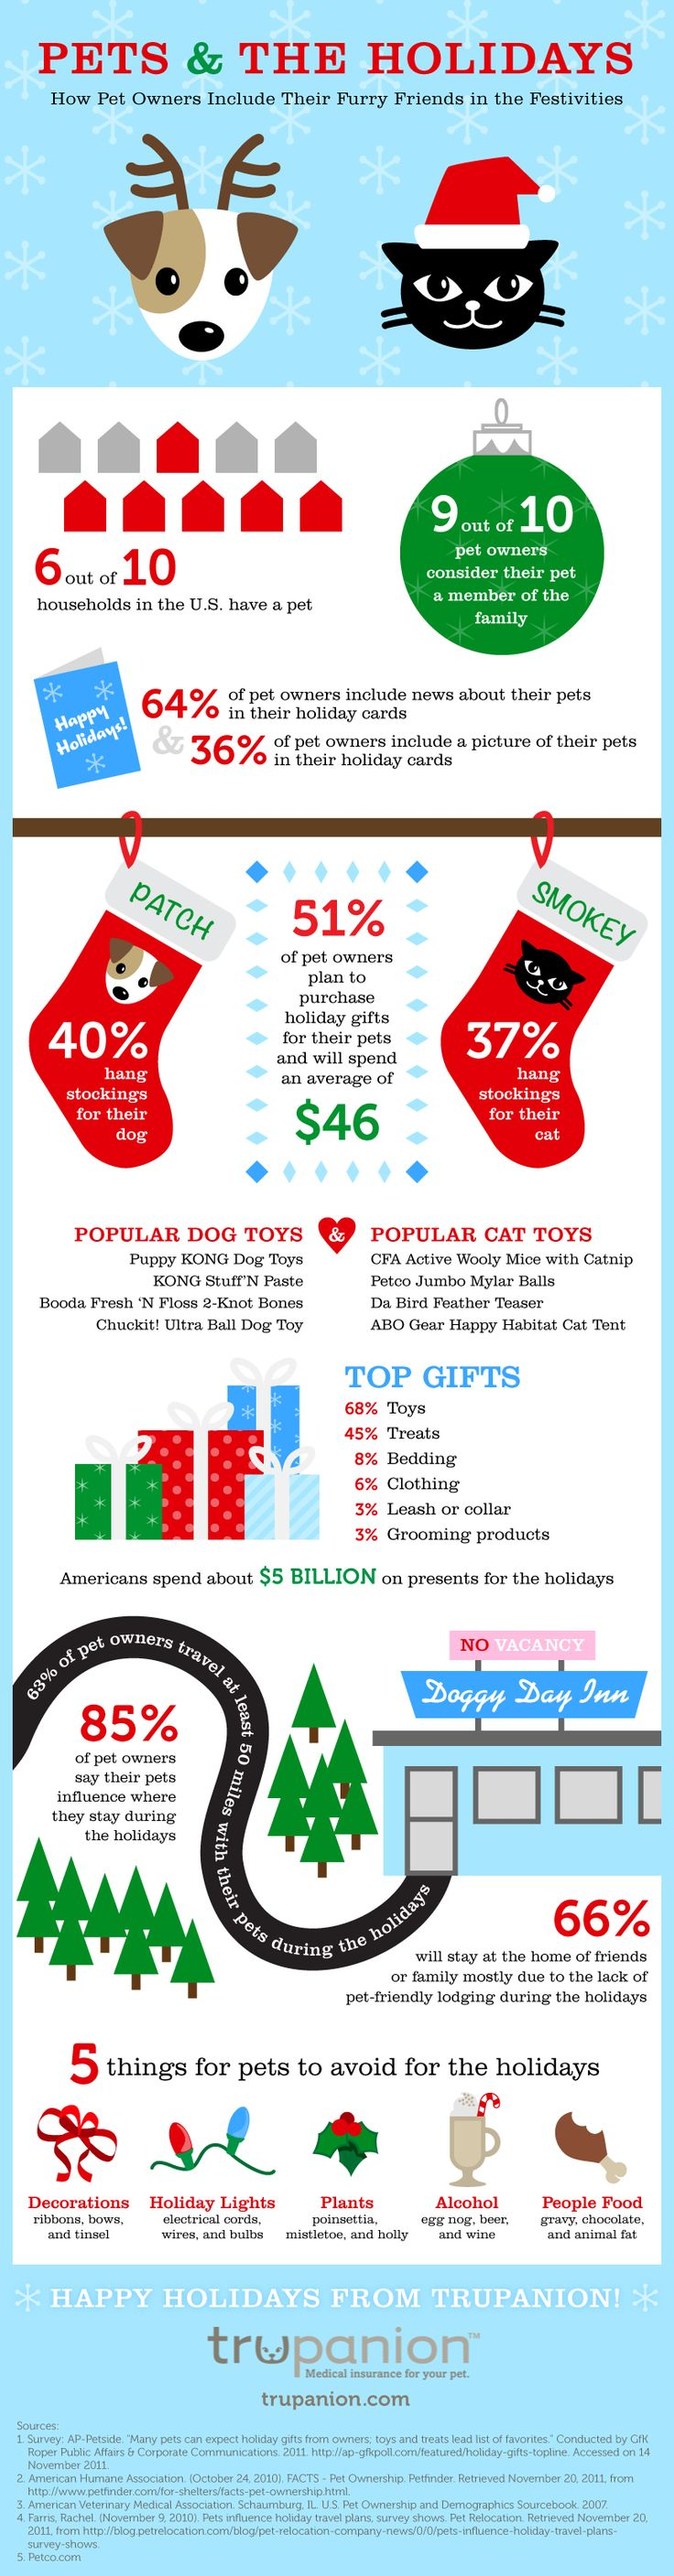 Pets and the Holidays: Interesting tips, fun facts, and helpful information to keep your pet safe this season!